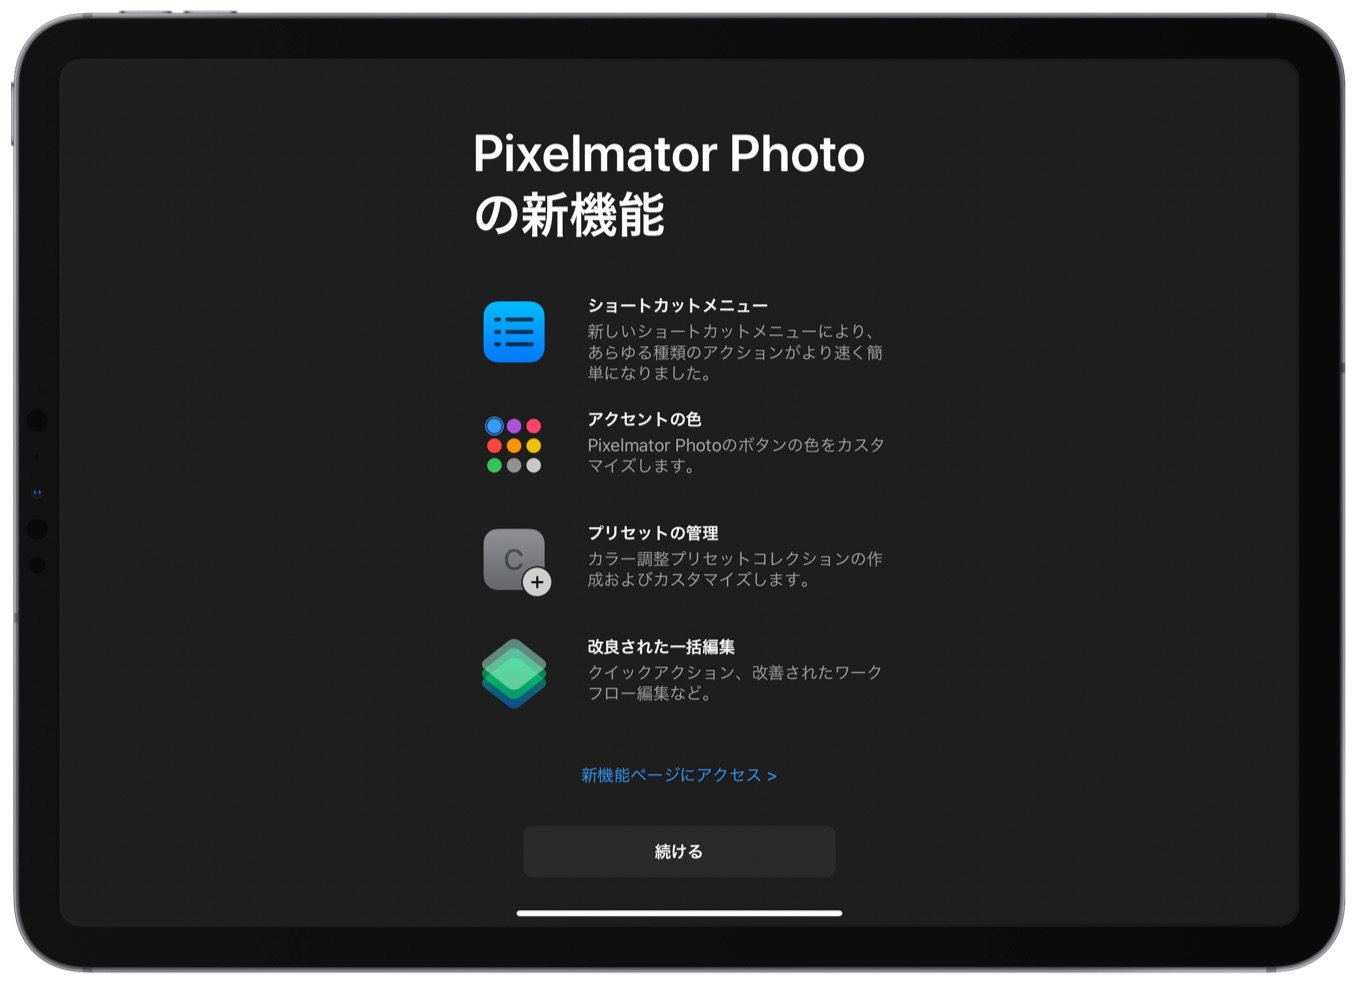 Pixelmator Photo 1.3 for iPad